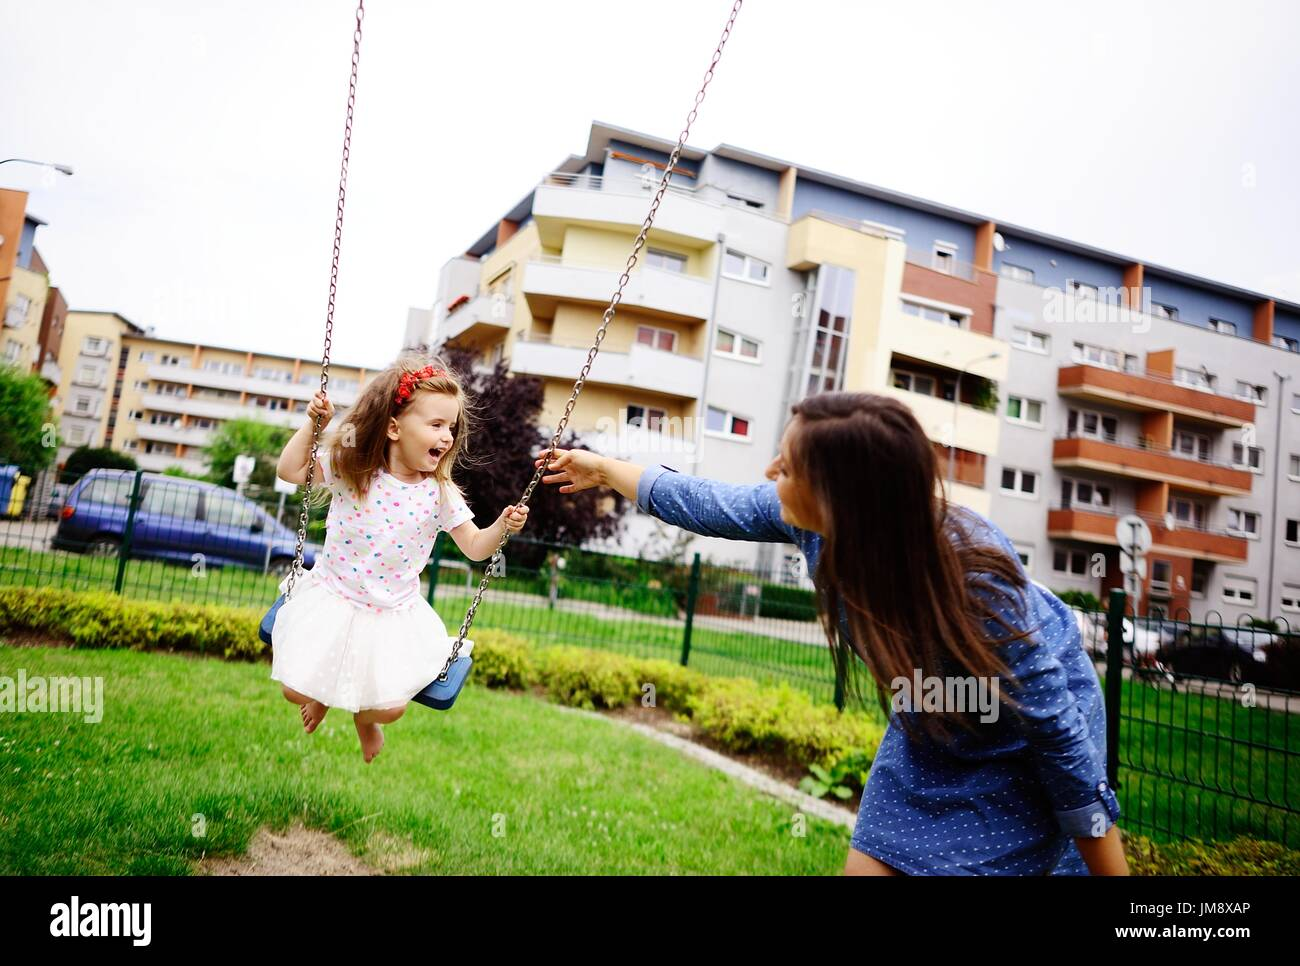 Young mother plays in the playground with the little daughter. Woman shakes the baby on a swing. Serene summer day. Good mood. - Stock Image